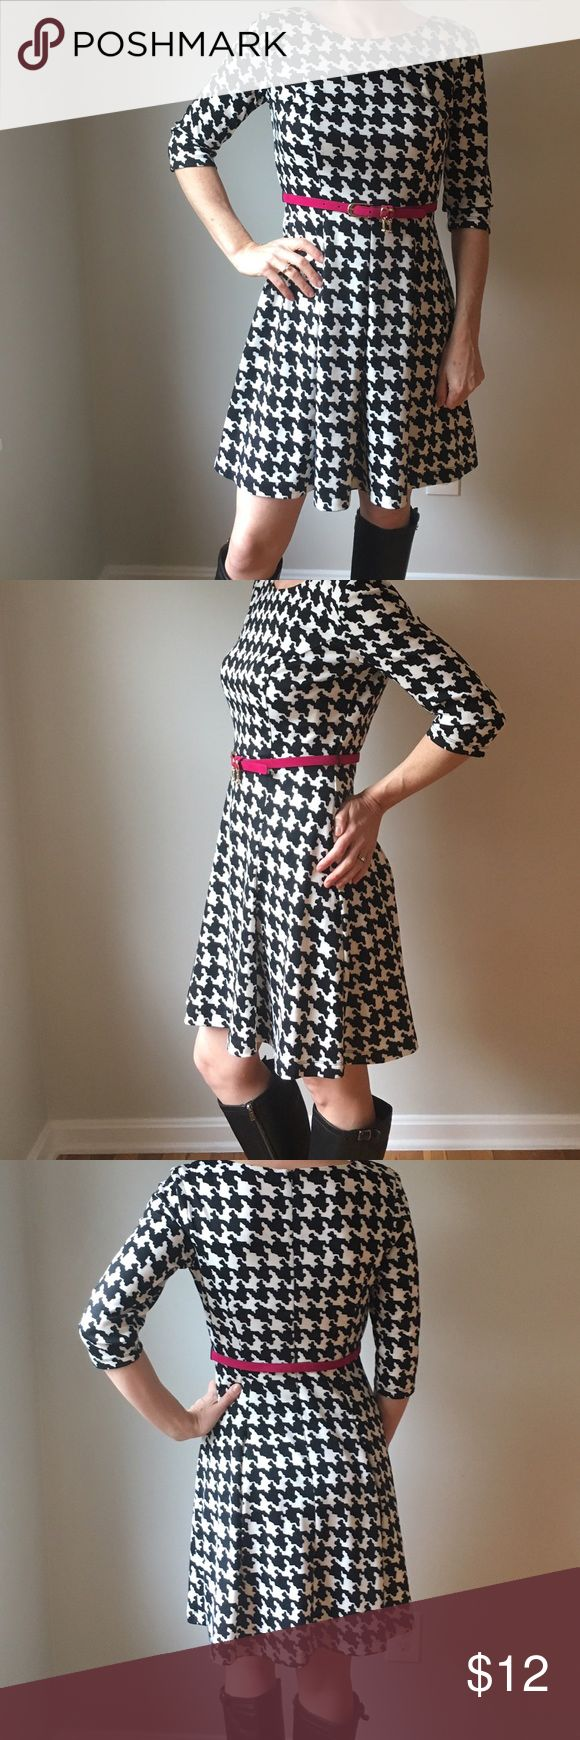 AGB mini dress AGB Petite mini A line dress in black and white print w/ pink accent belt. Size 6P. Slight pilling at both shoulders as shown in the photos. AGB Dresses Mini